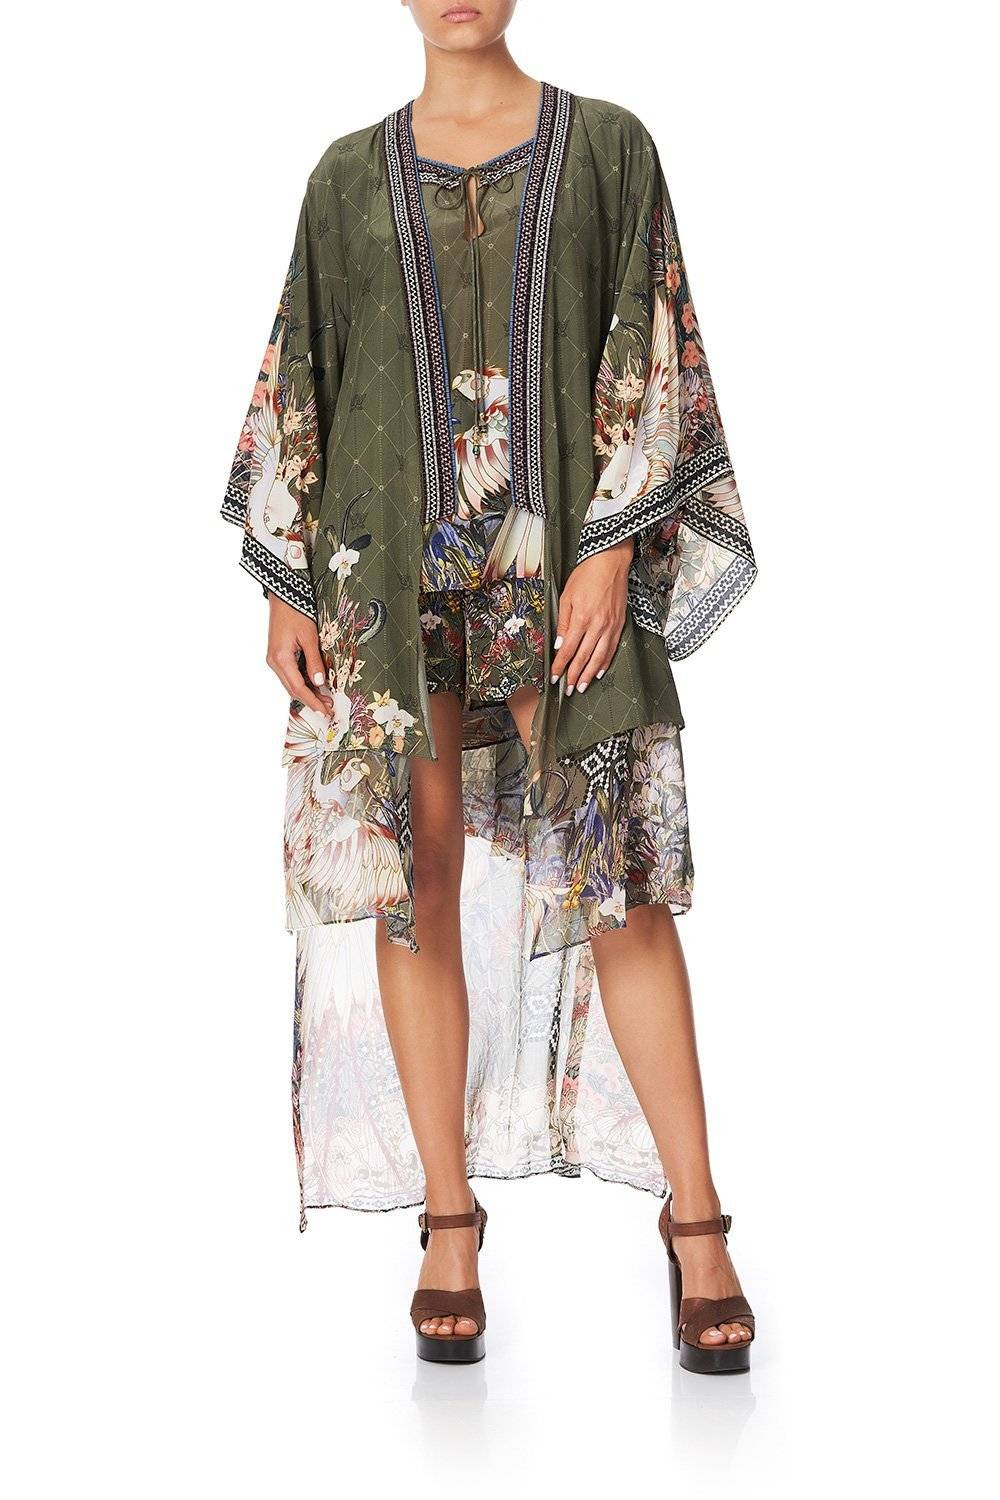 WATCHFUL WINGS KIMONO WITH LONG UNDERLAYER